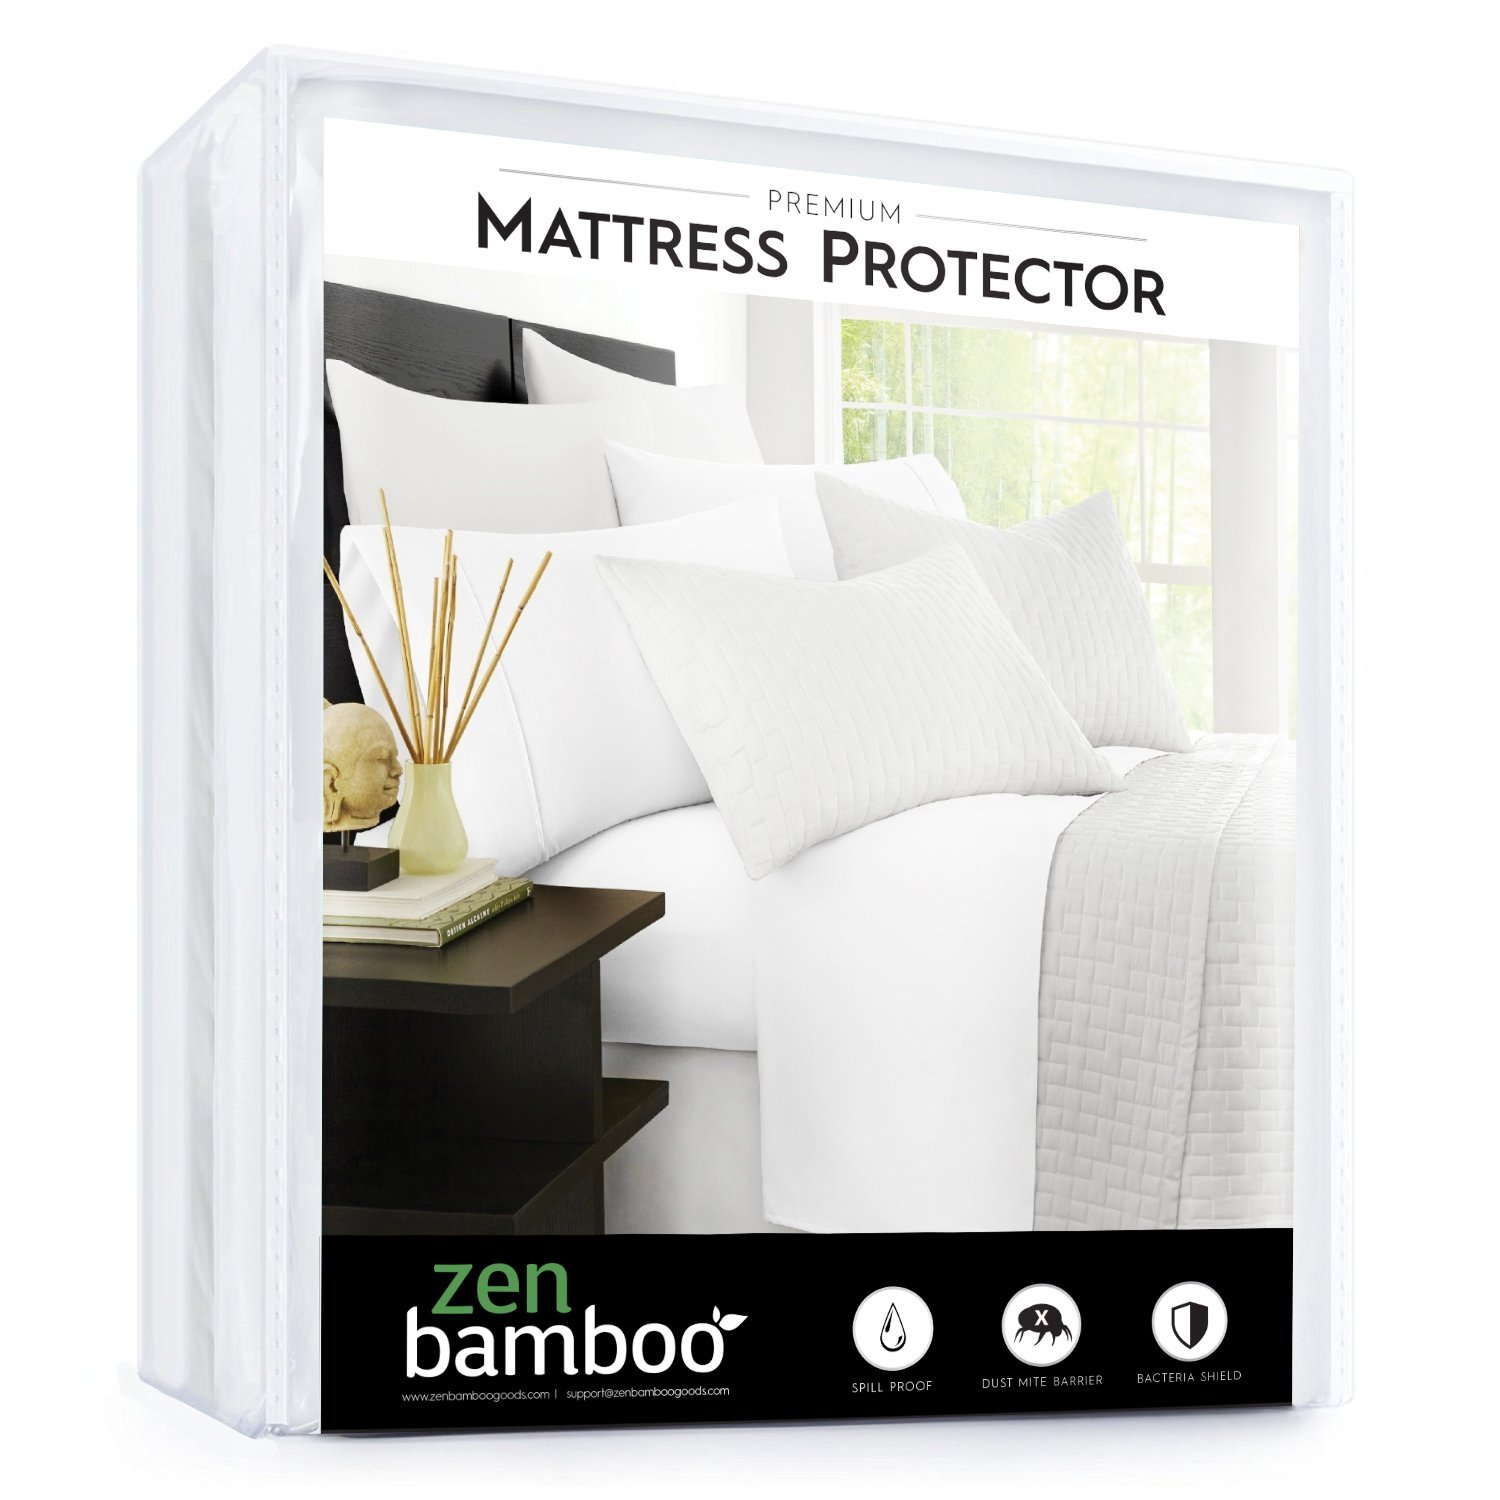 bed mattress memory gellux beyond cooling lane pin review protector and sizes foam topper multiple gel bath